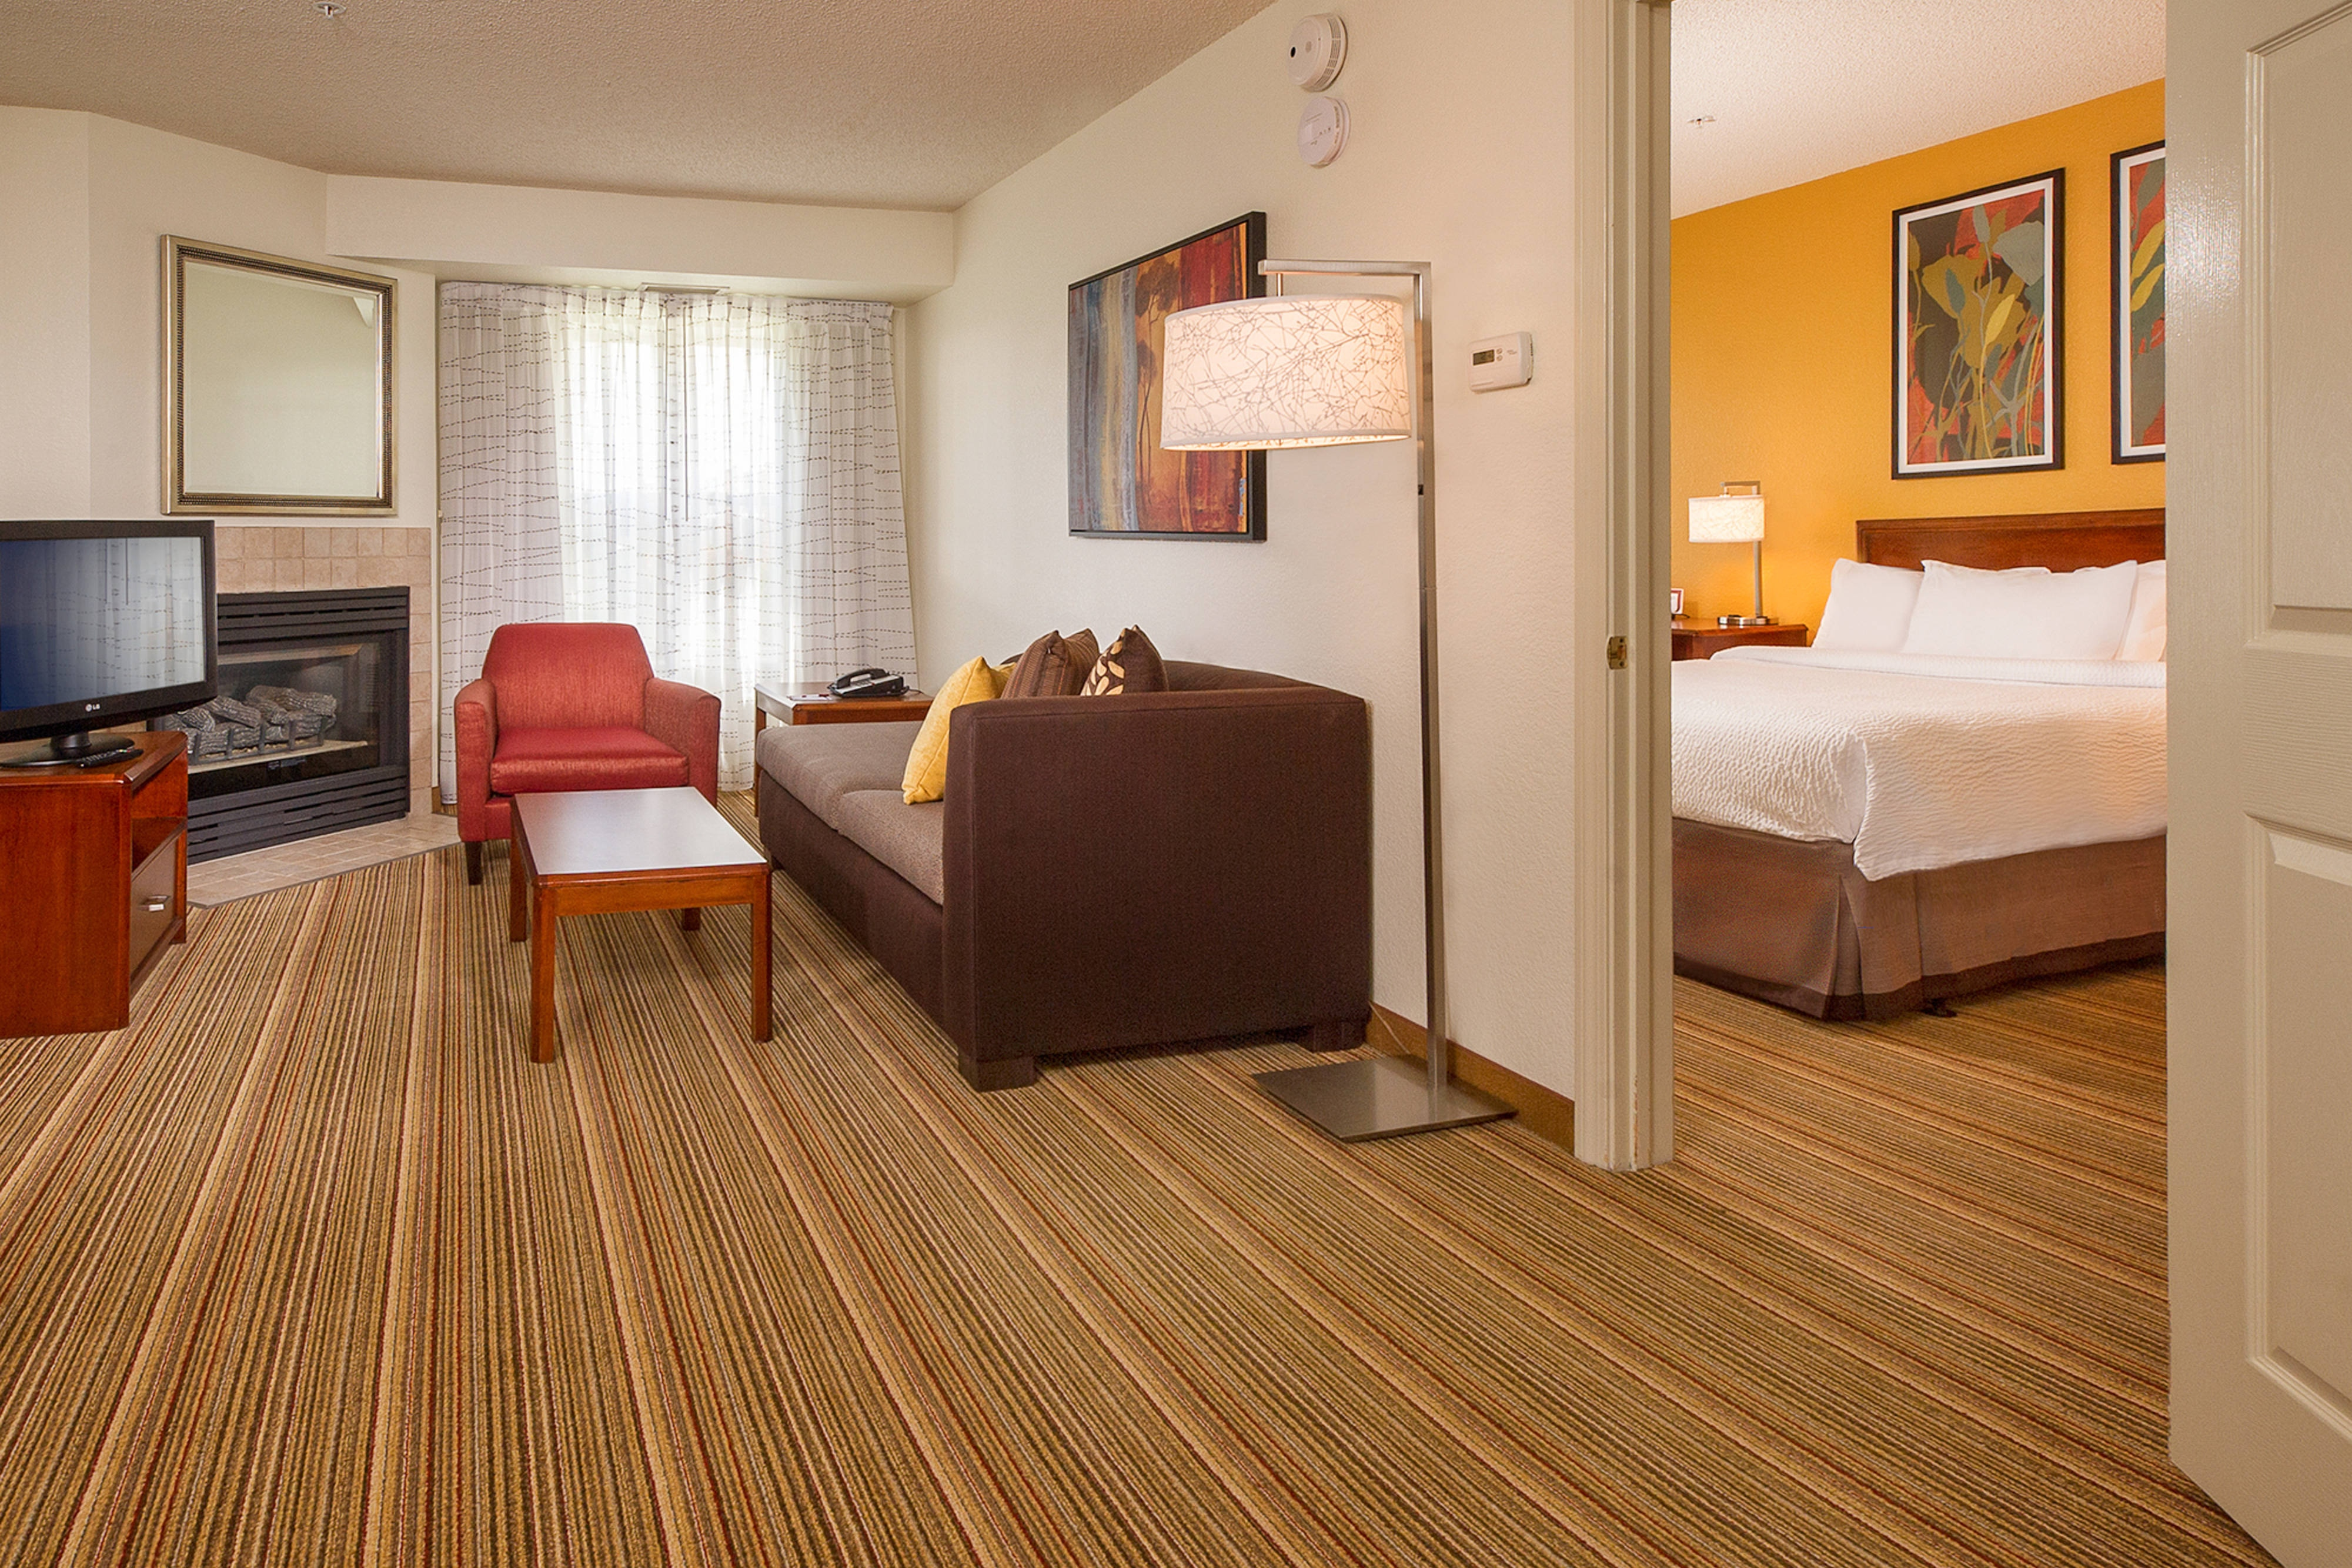 residence renovated clsc msyrm louisiana hor metairie in new rooms inn orleans suites newly bedroom hotels hotel suite